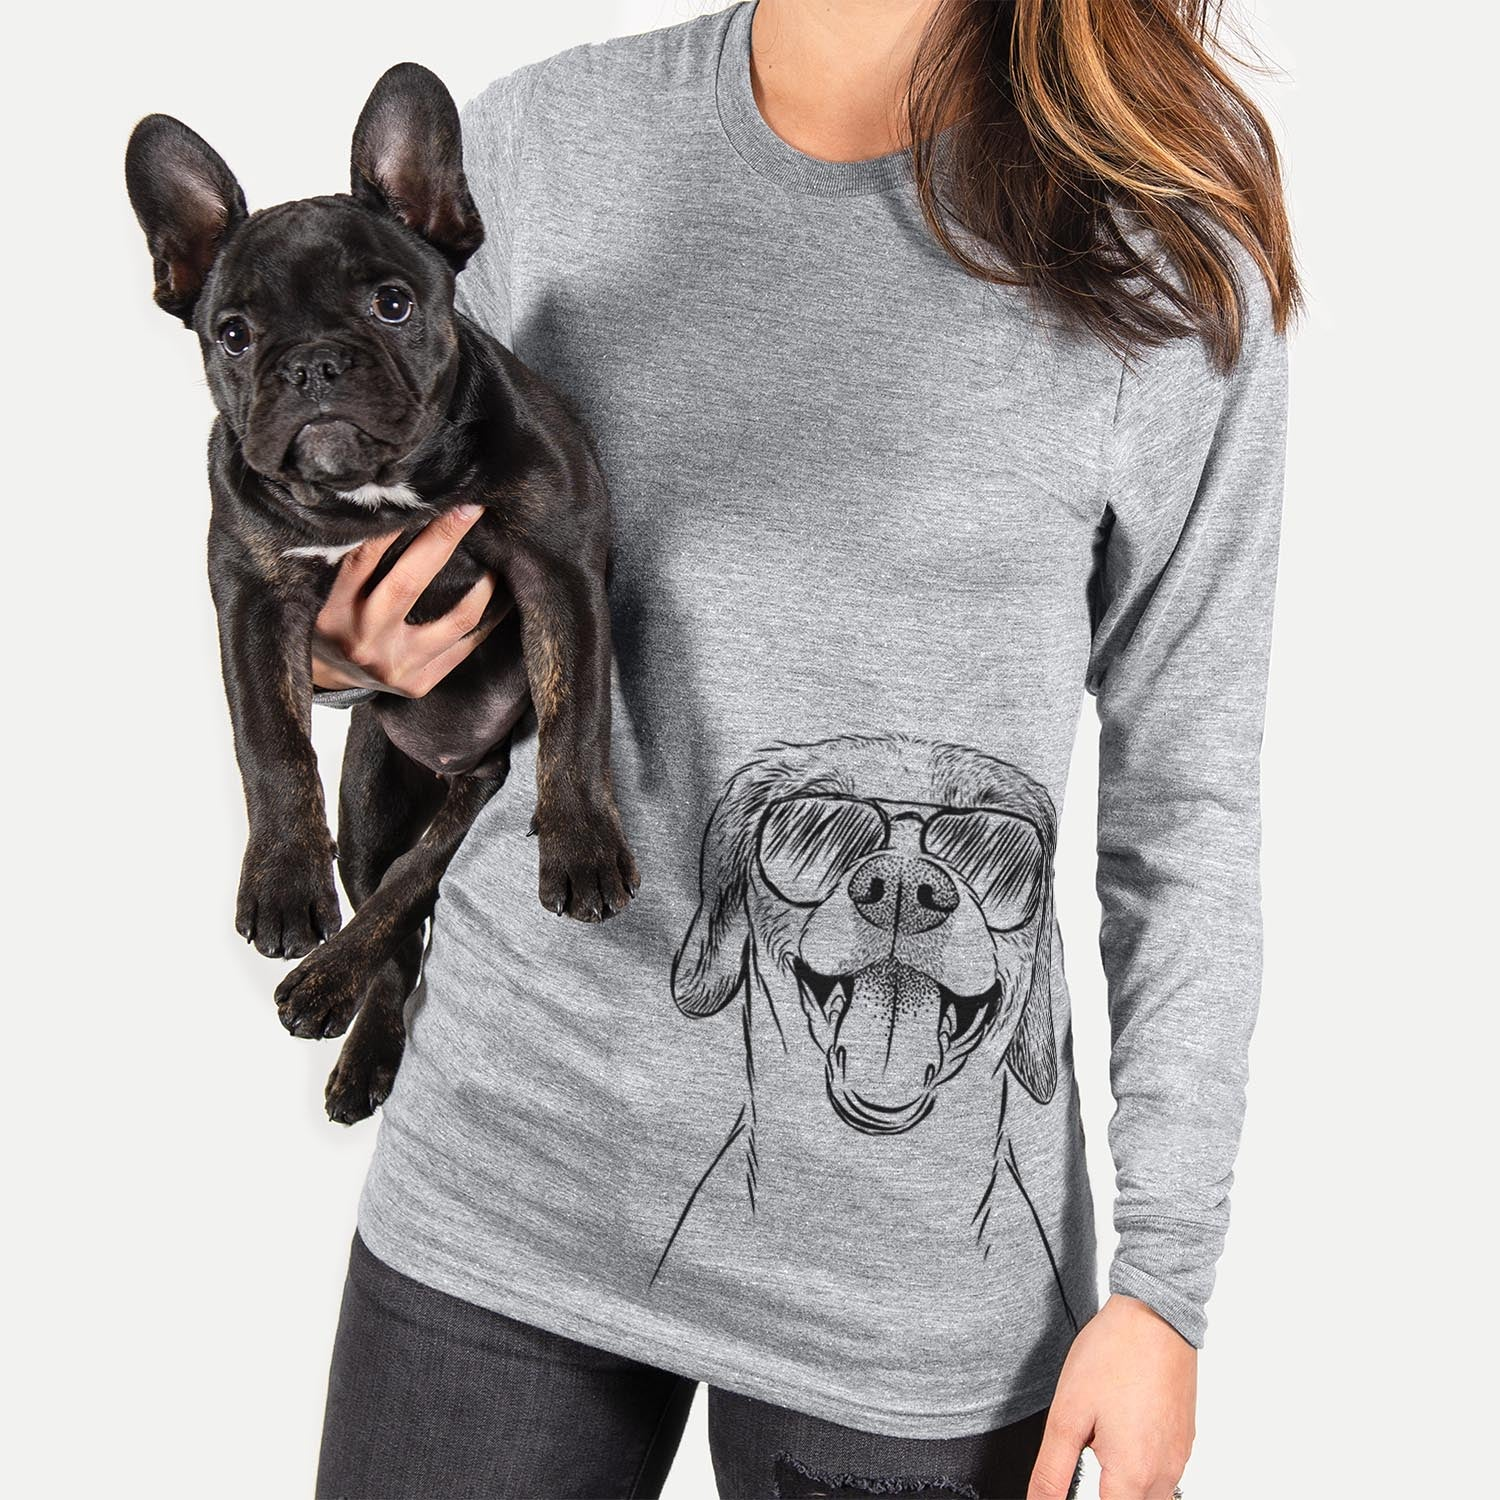 Obi the Beagle Mix - Long Sleeve Crewneck